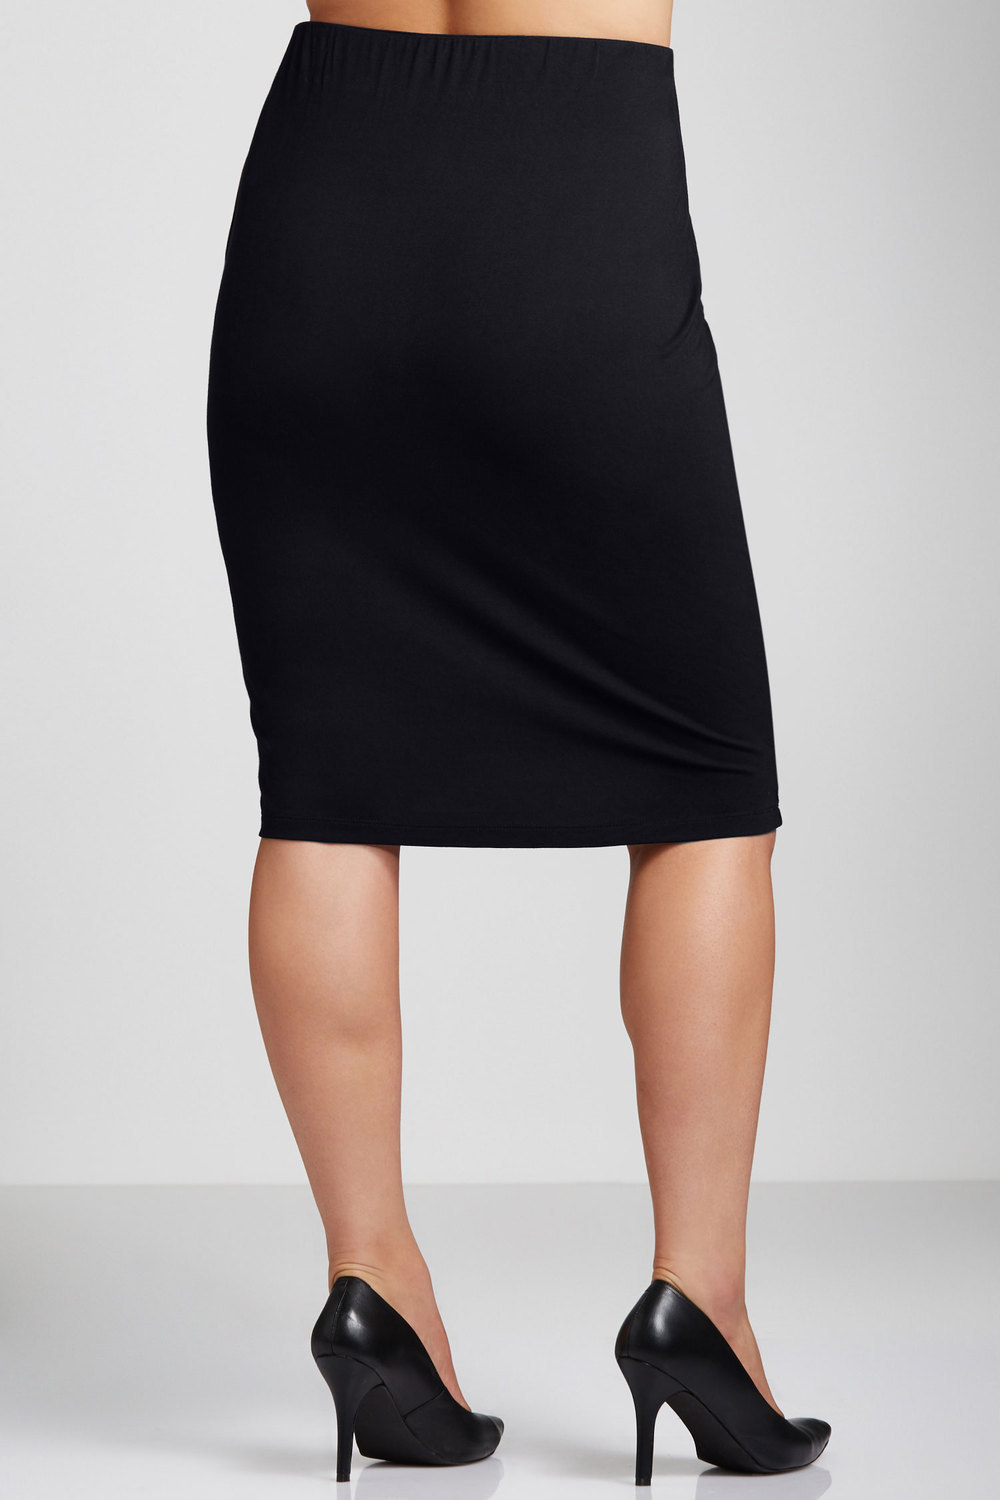 Buy Women Pencil Skirts Online In India At erawtoir.ga Select From A Large Variety Of Pencil Skirts For Women & Girls And Get Free Shipping, Cash On Delivery & Easy Return.